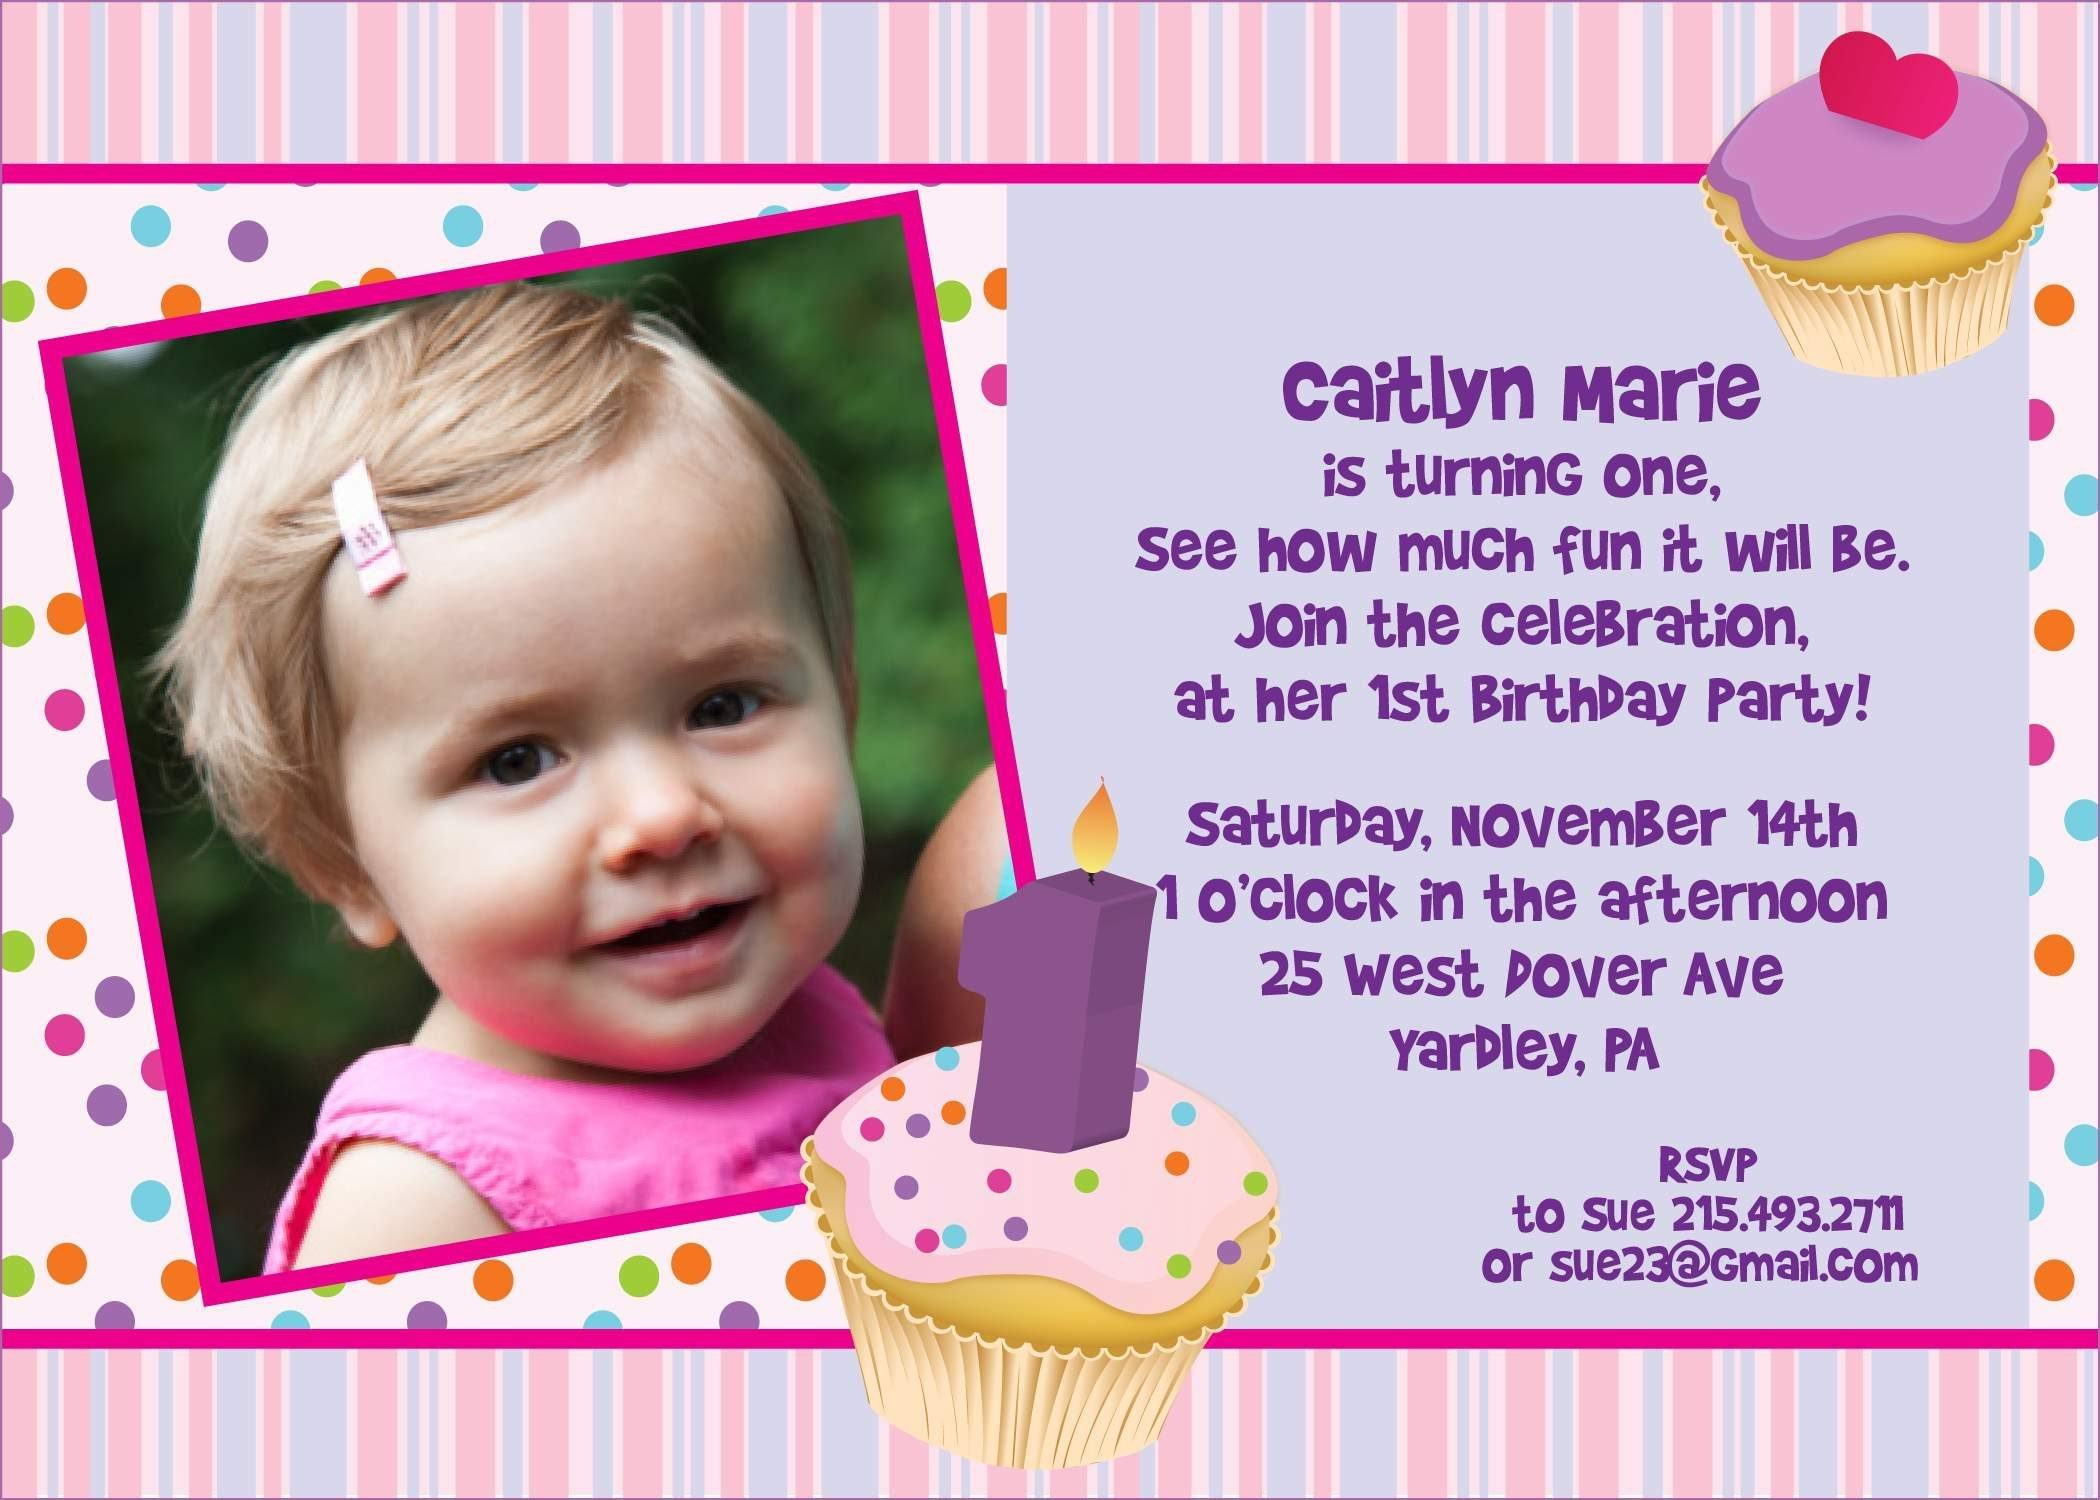 1st birthday invitation card ; Baby-First-Birthday-Invitations-Free-For-You-St-Birthday-Invitation-Cards-Templates-Free-Of-Baby-First-Birthday-Invitations-Epic-First-Birthday-Invitation-Cards-Templates-Free